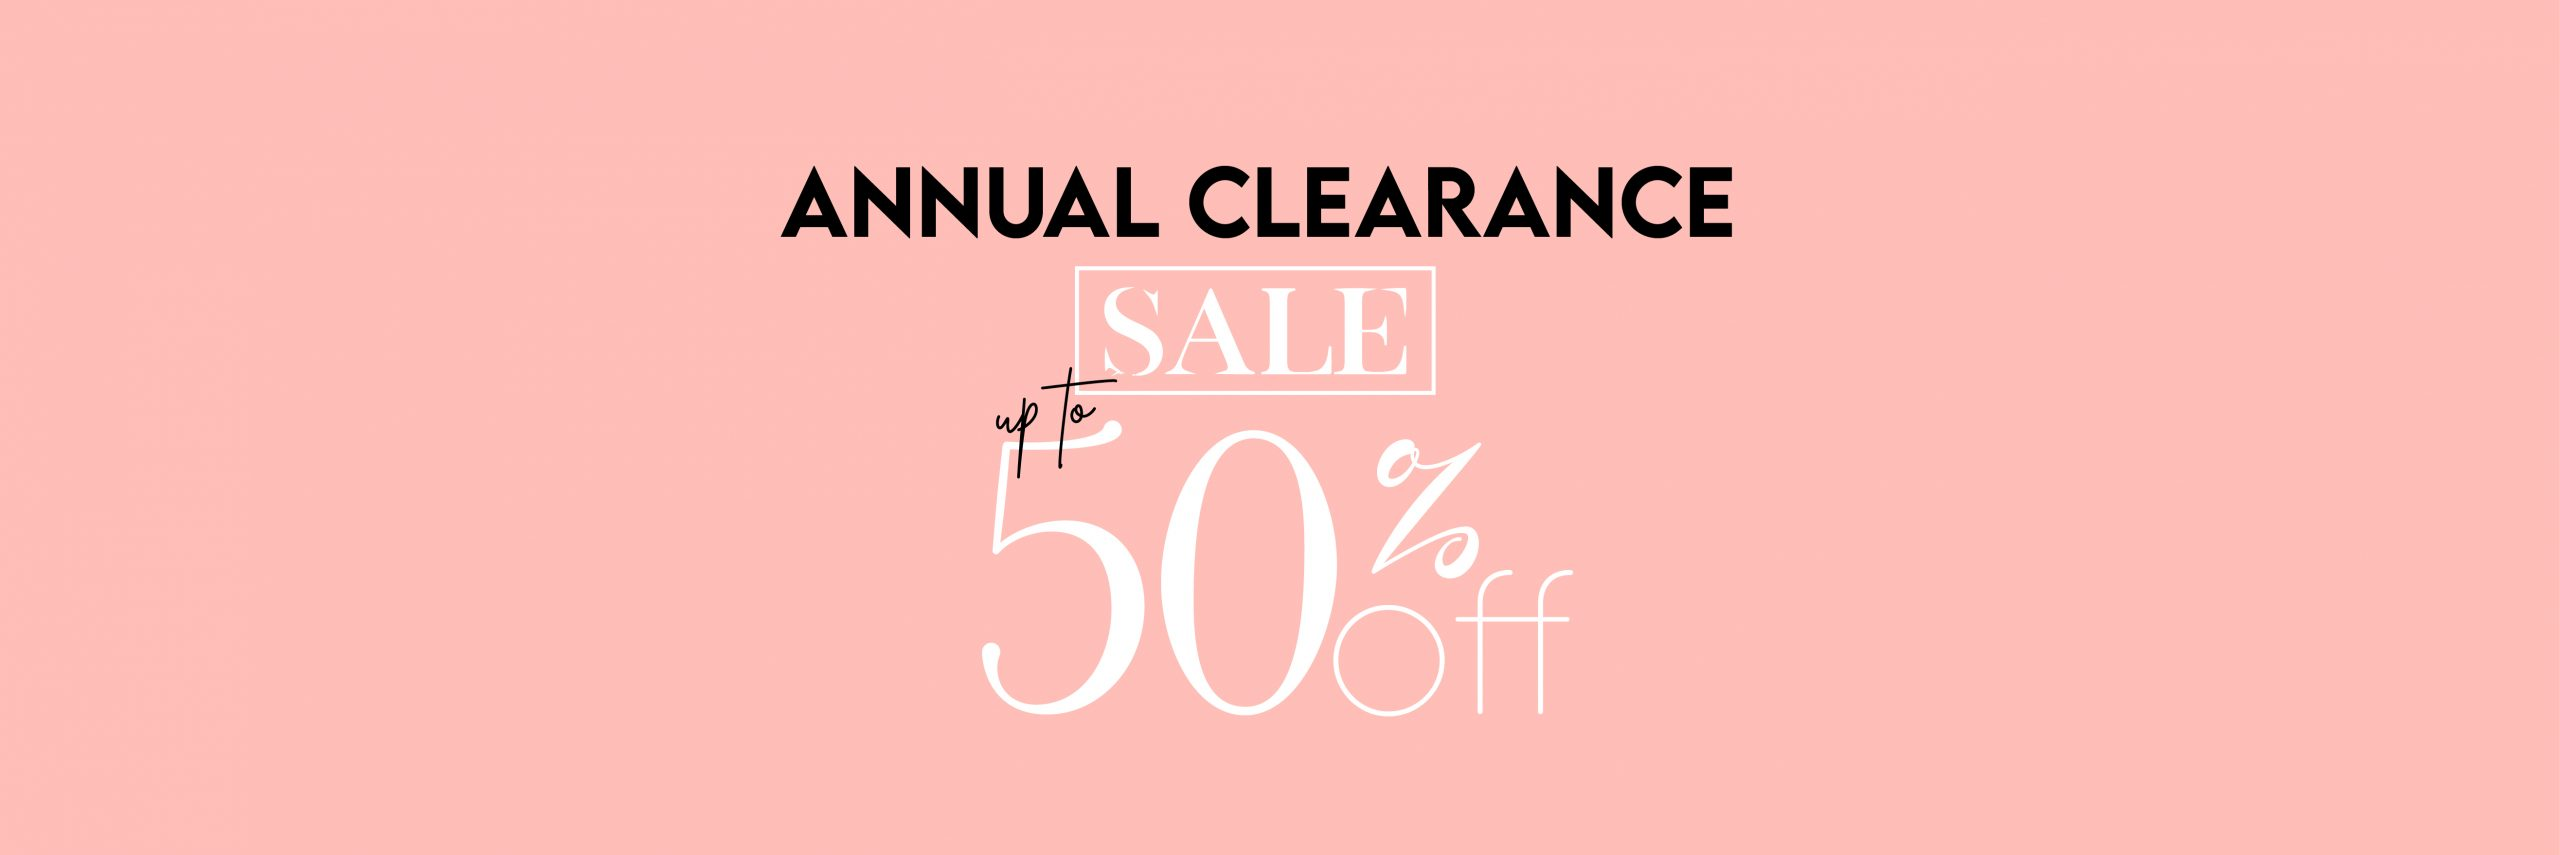 Sifona - Annual Clearance Sale